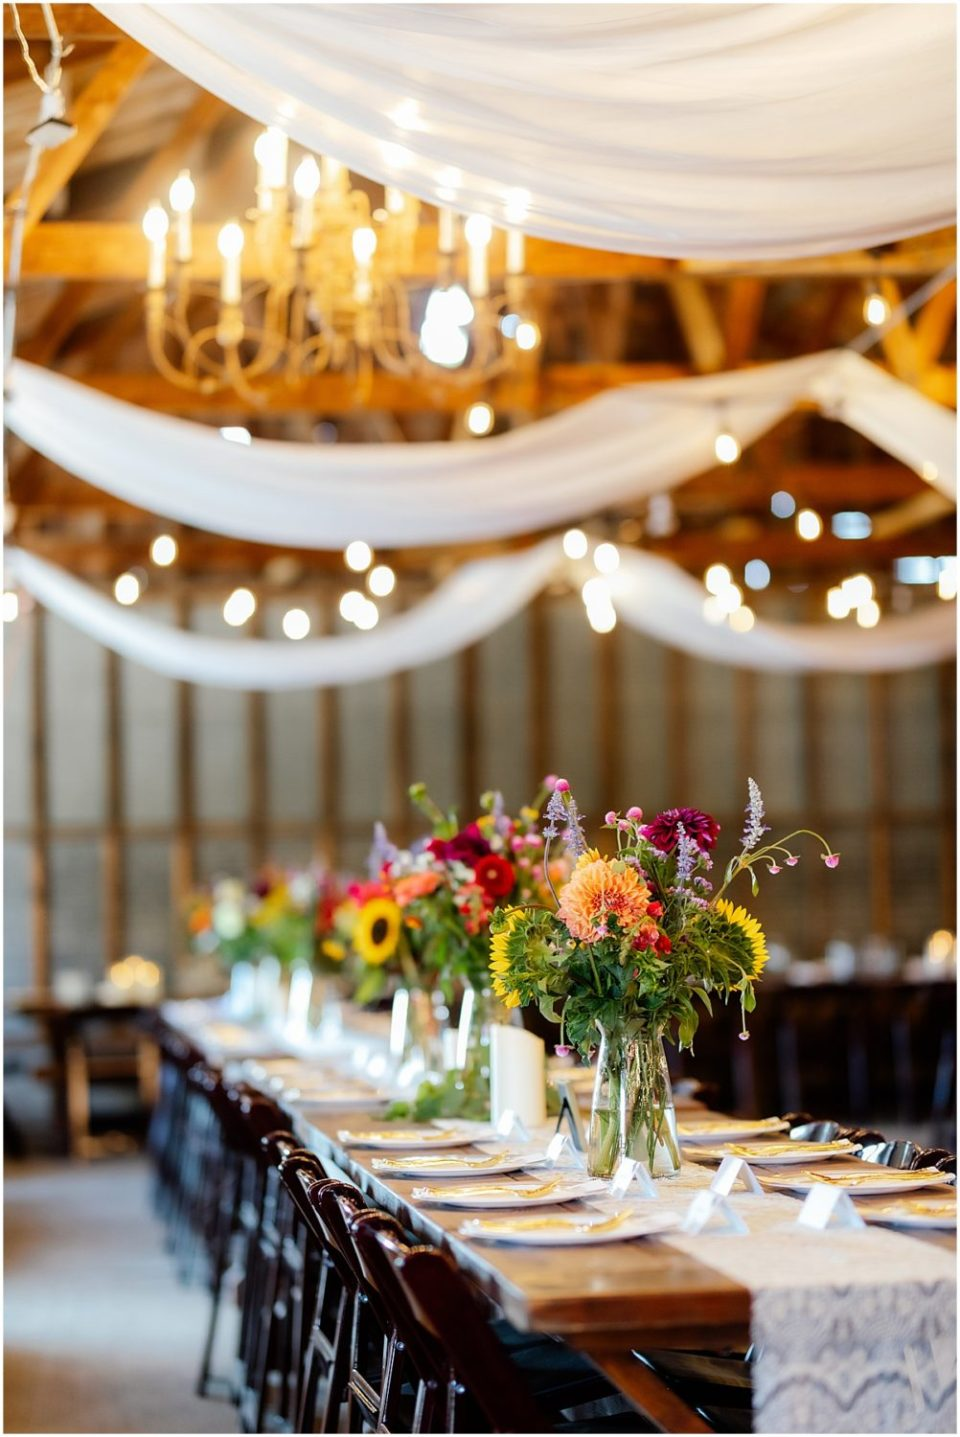 Reception Details in barn at Erickson Farmstead